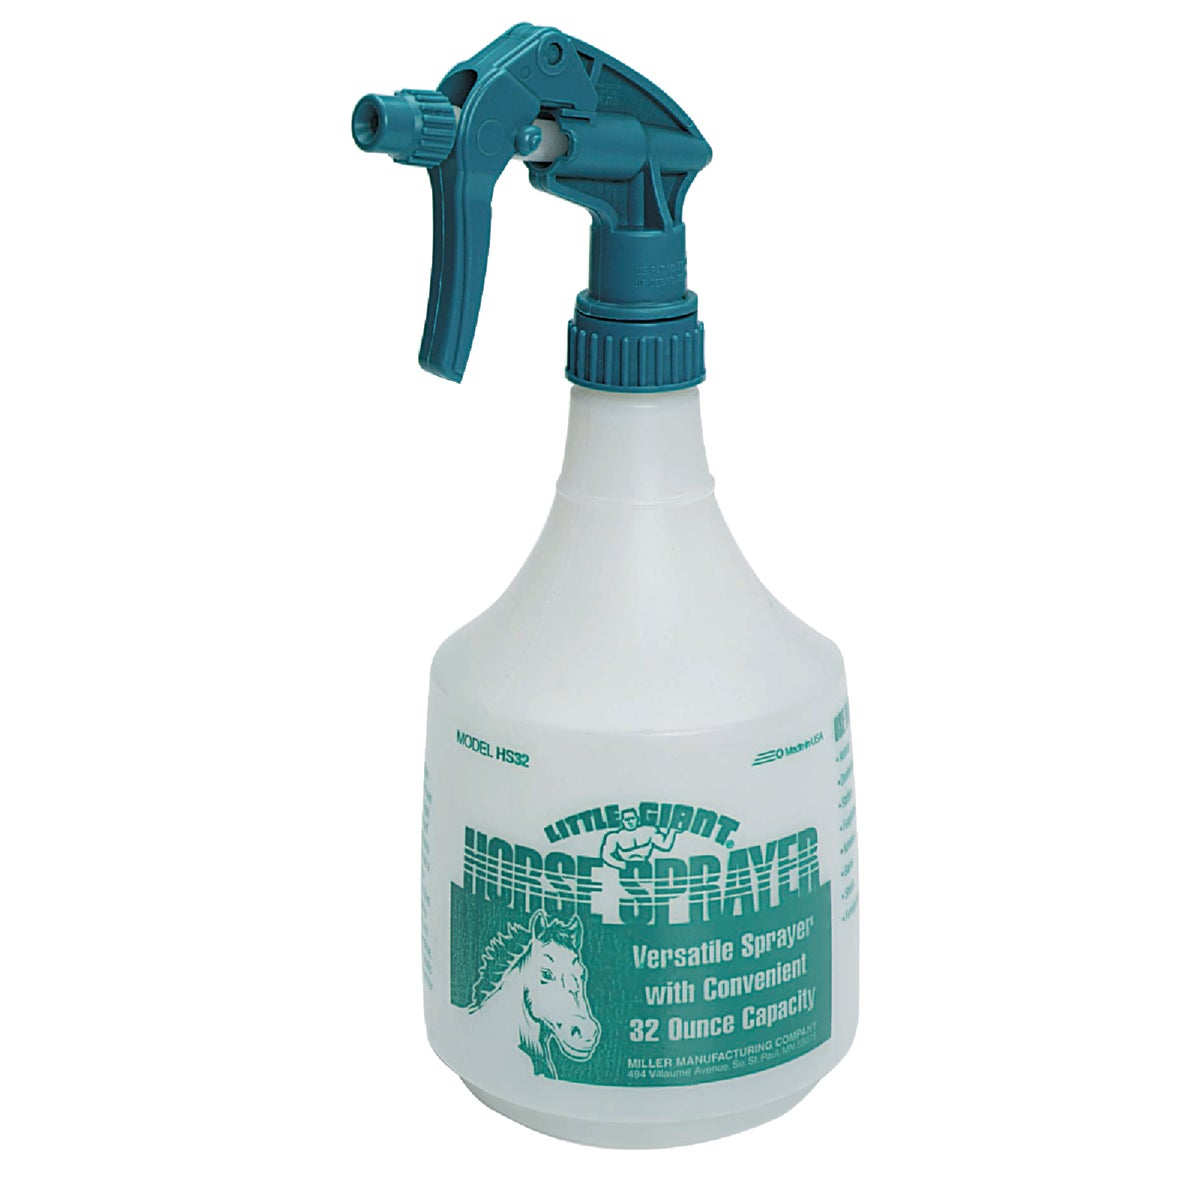 TEAL HORSE SPRAYER